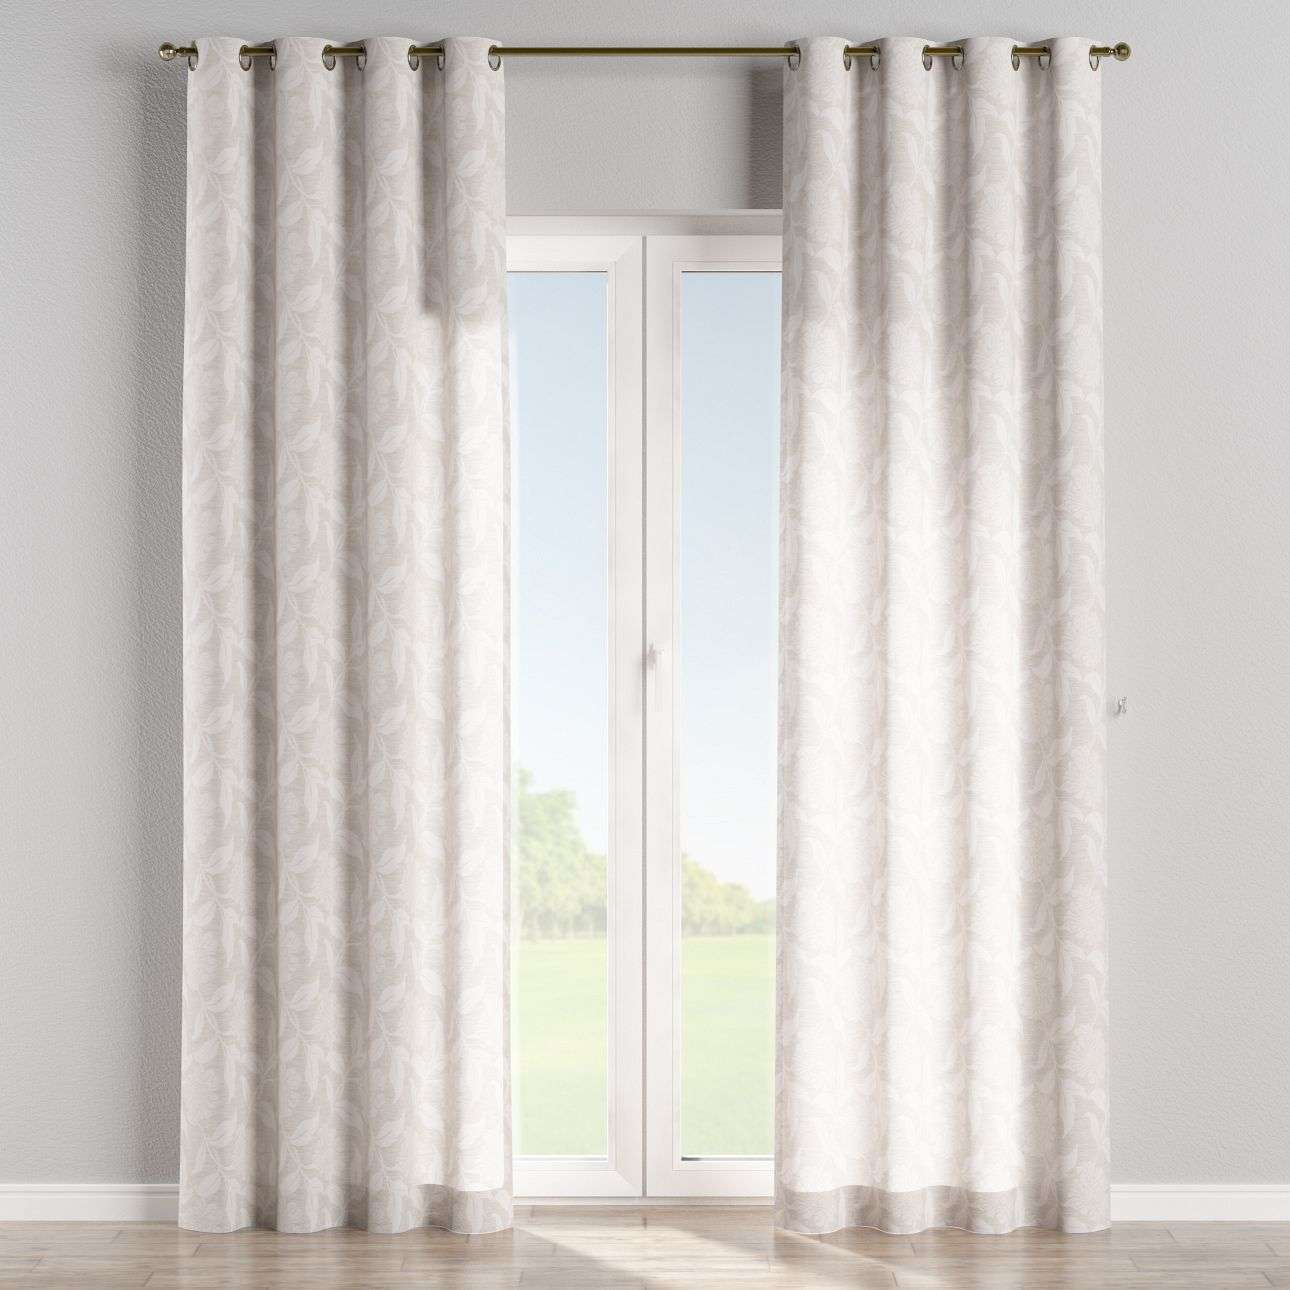 Eyelet curtains 130 x 260 cm (51 x 102 inch) in collection Venice, fabric: 140-51